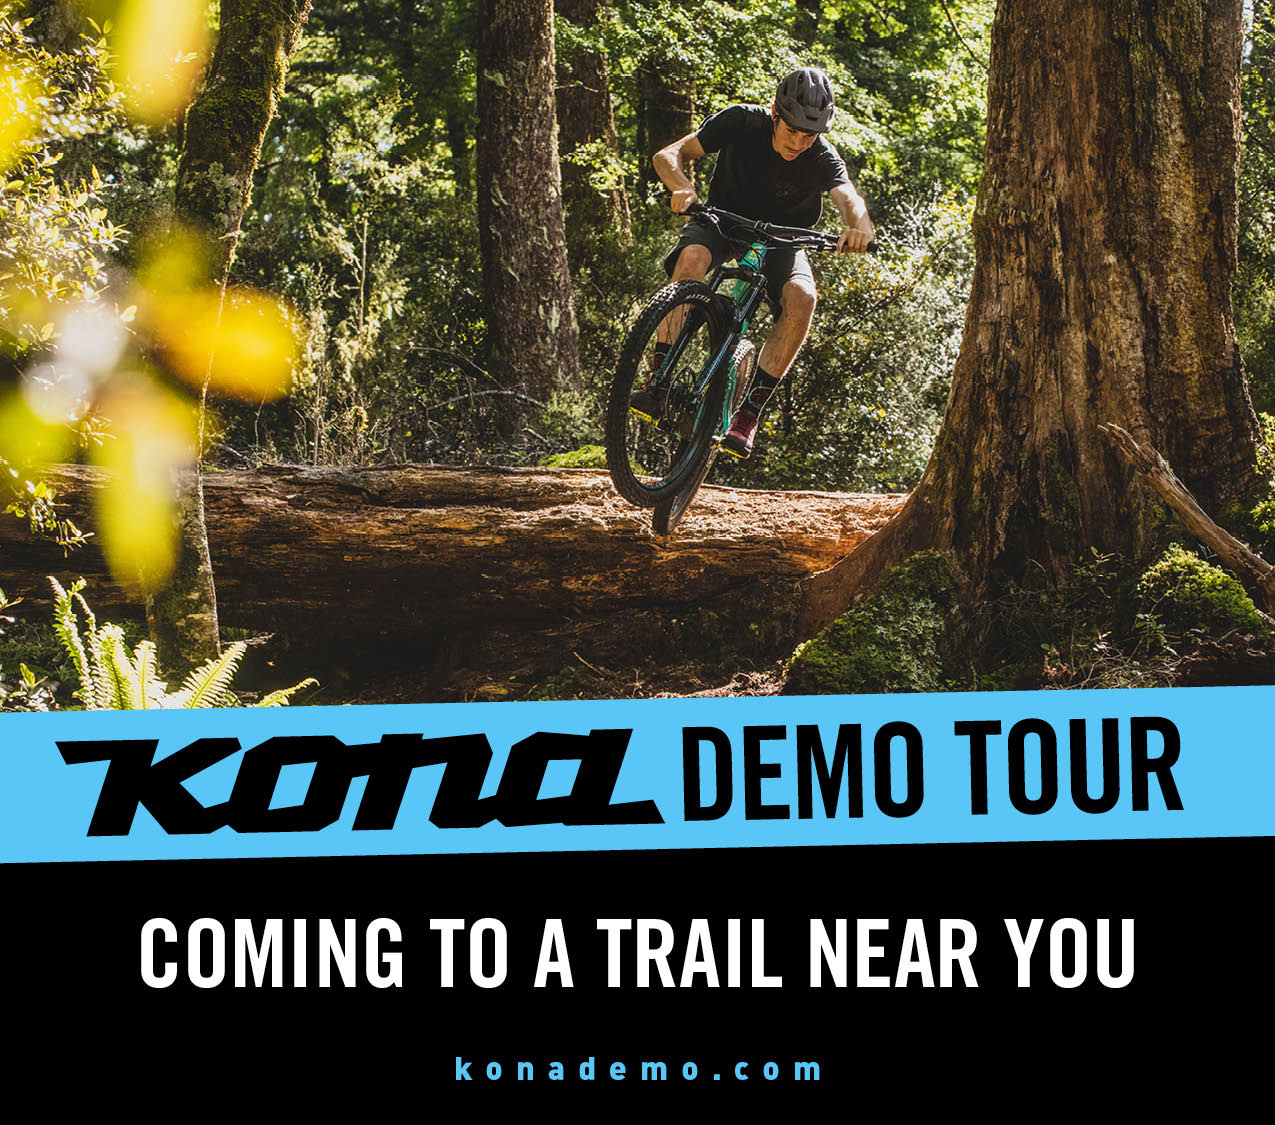 California, the KONA demo tour is headed your way!